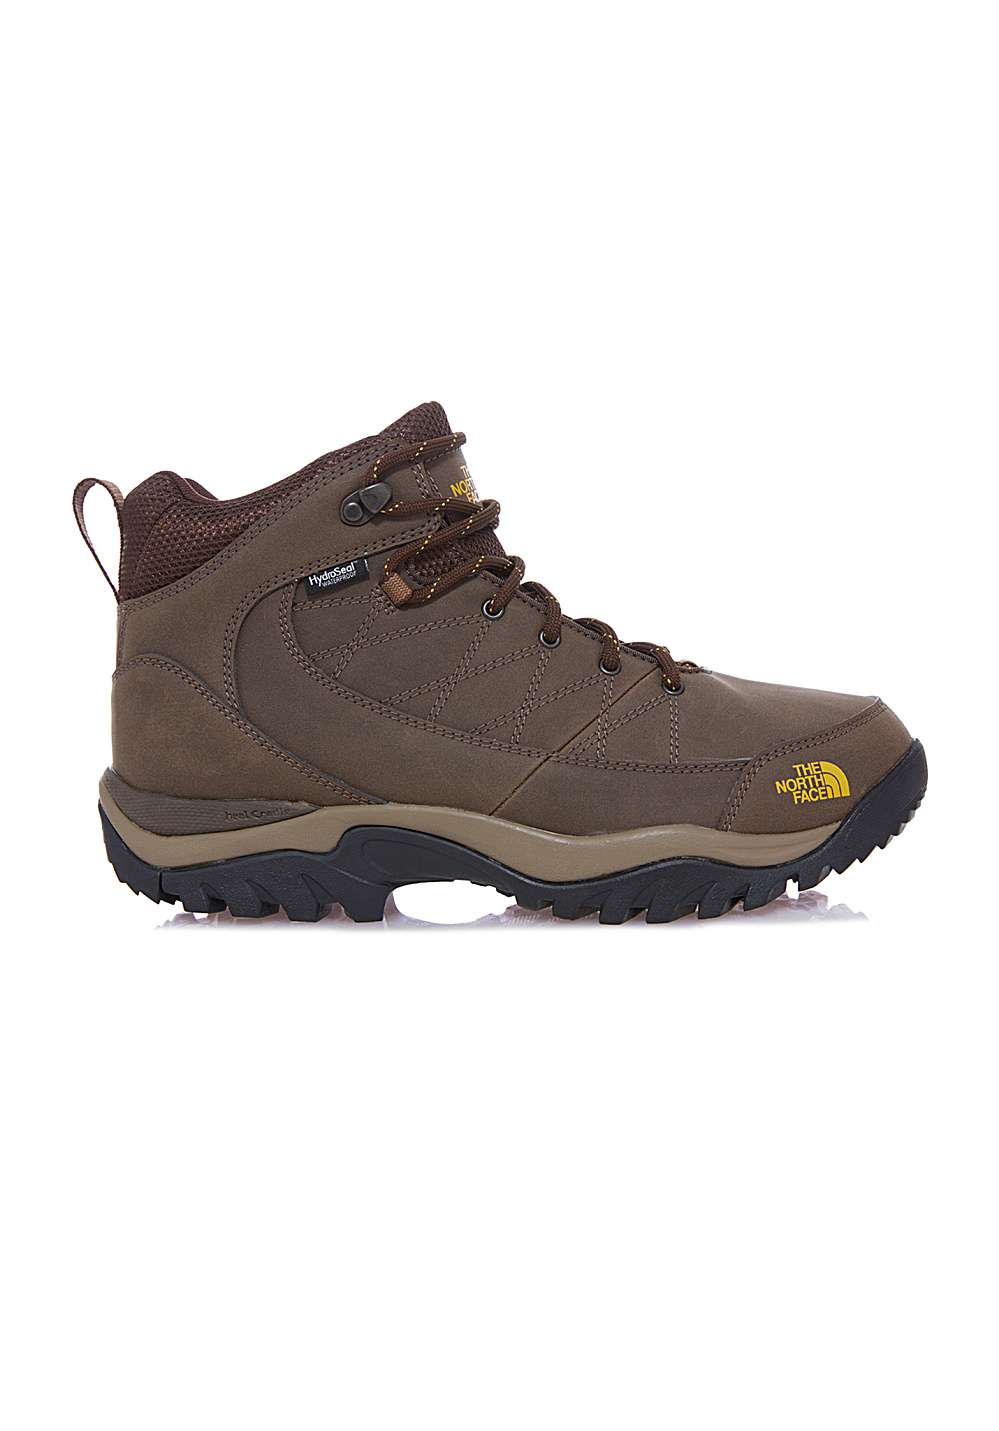 032c11a20 THE NORTH FACE Storm Strike Wp - Hiking Shoes for Men - Brown ...